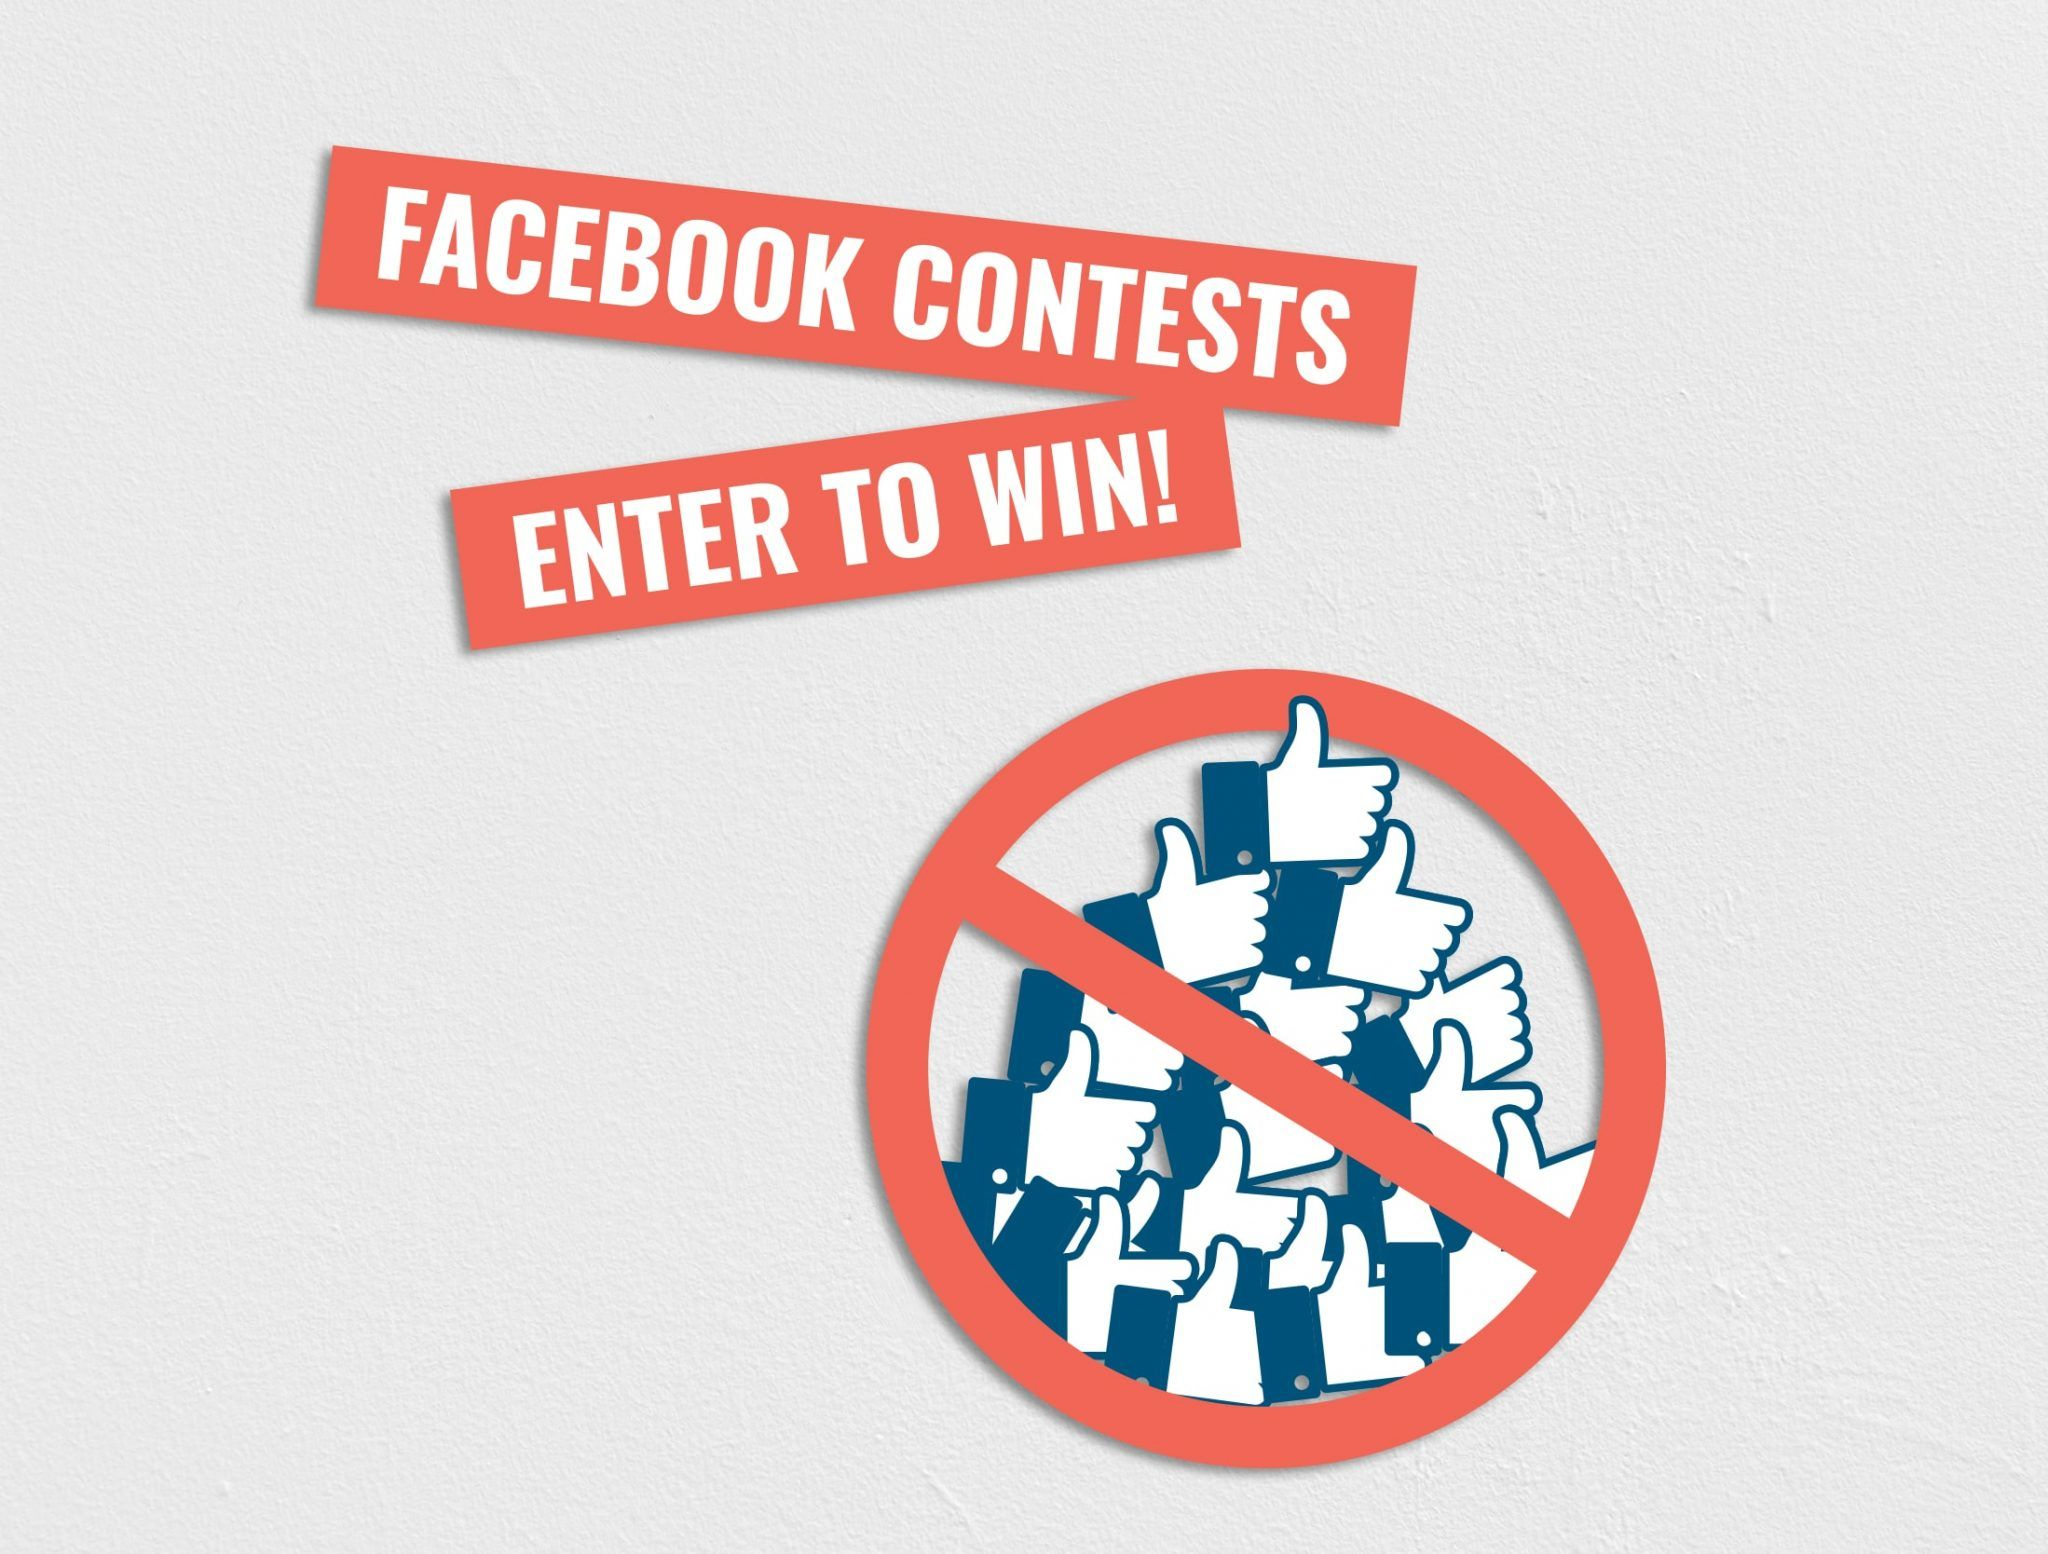 Facebook contest rules - Page Likes are forbidden